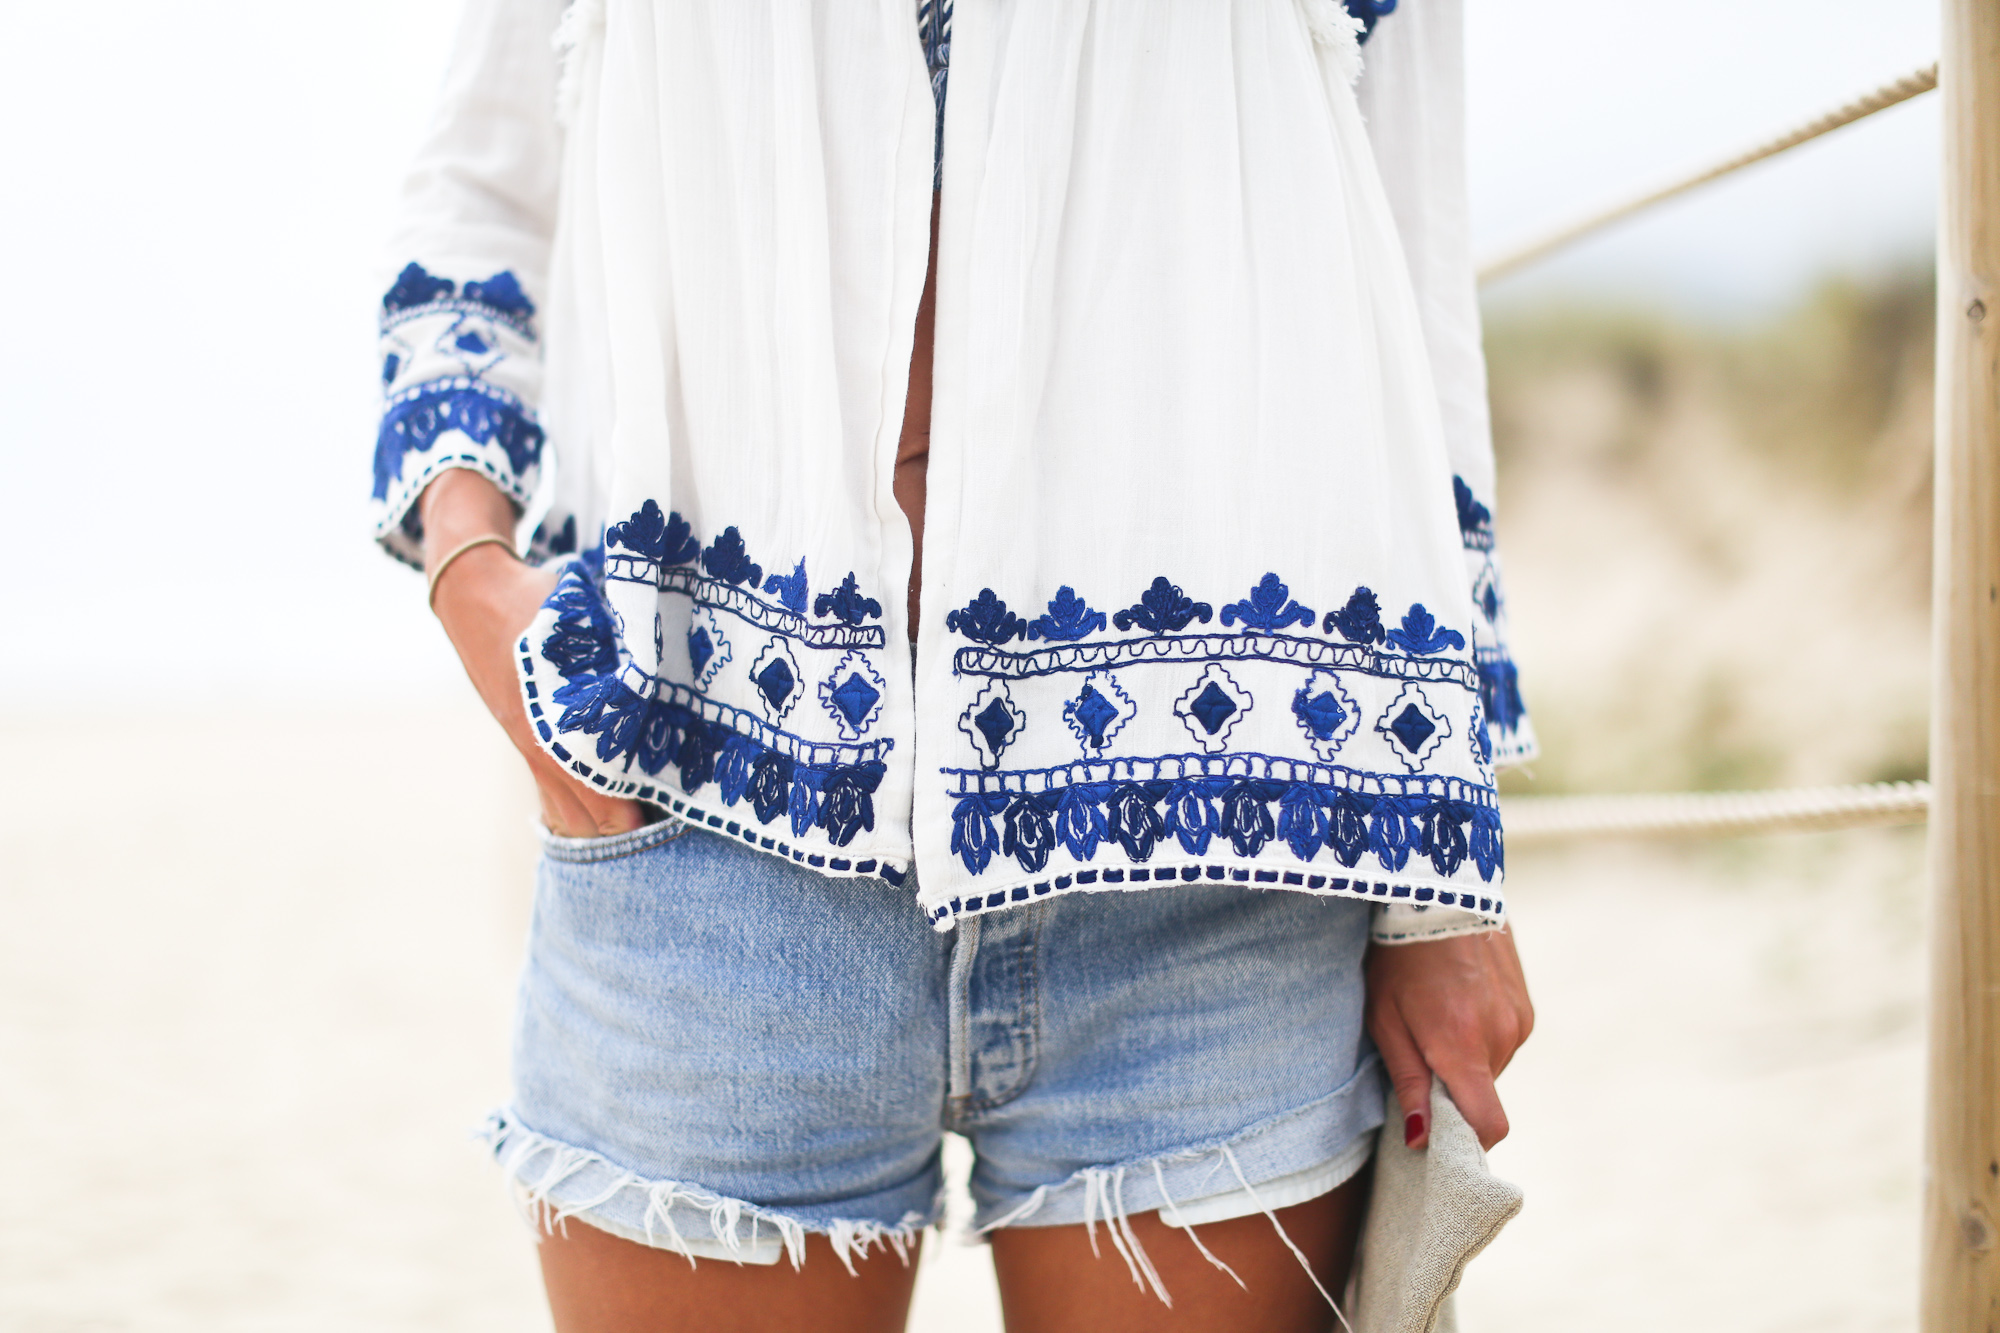 Clochet_streetstyle_zara_boho_embroided_shirt_levis501vintage_cannotier_mglinenbags-6